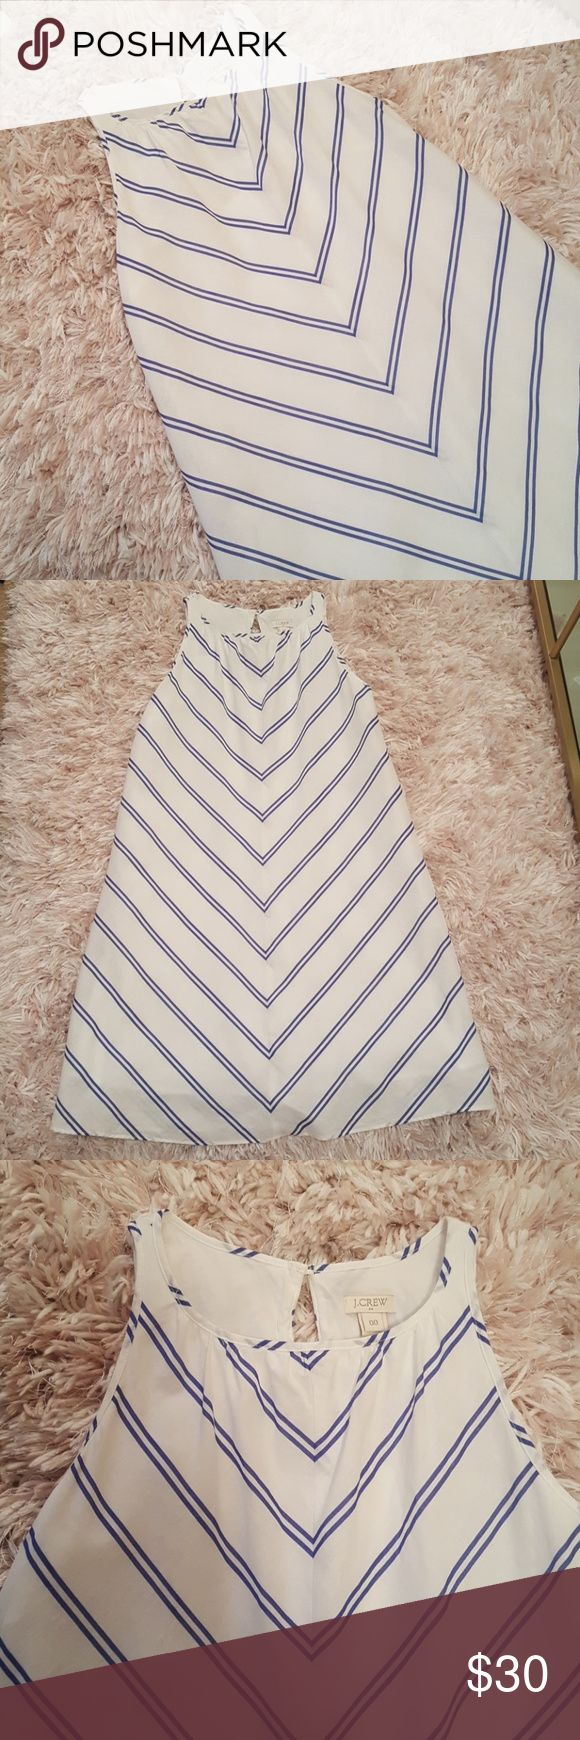 LIKE NEW J.crew Sundress sz 00 LIKE NEW J.crew sundress sz 00 Crisp white and navy chevron, above the knee dress. Lined. Cotton and linen J. Crew Dresses